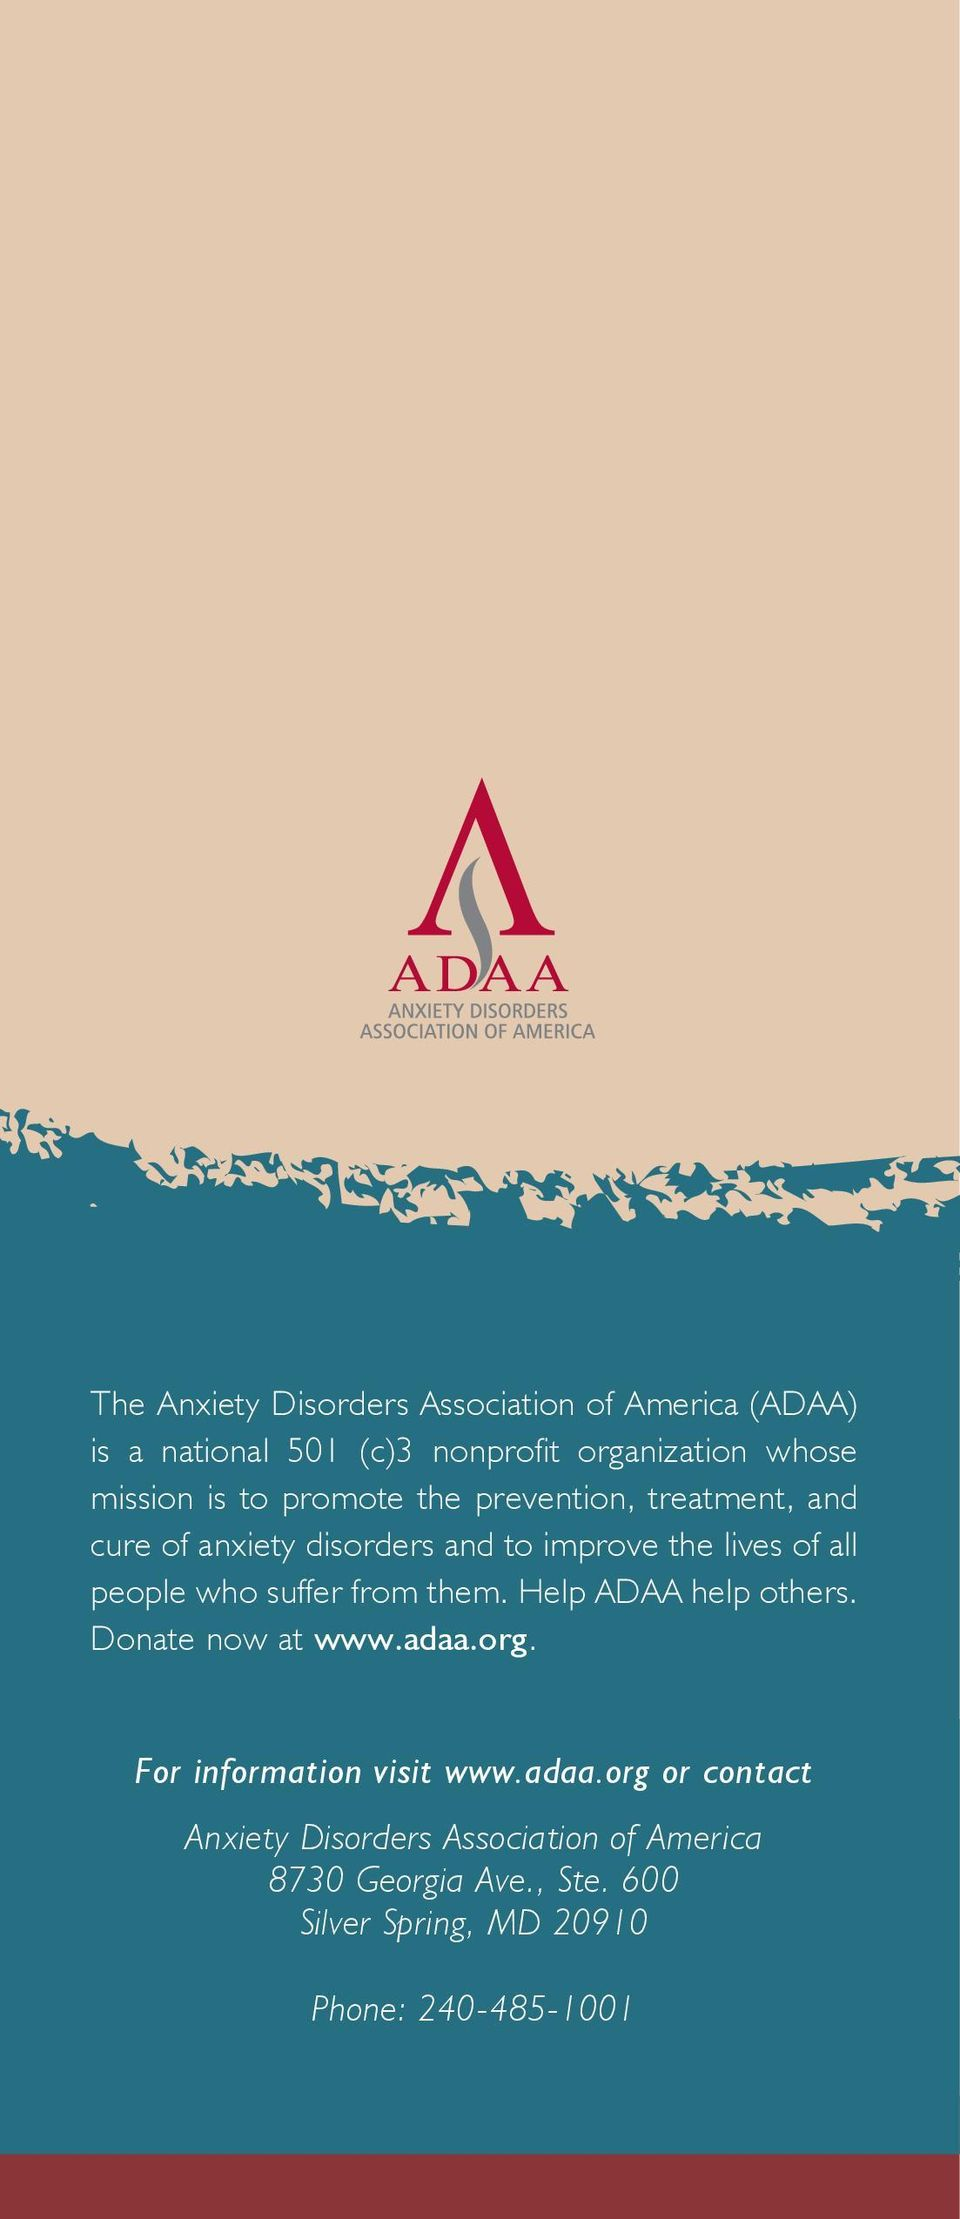 who suffer from them. Help ADAA help others. Donate now at www.adaa.org.